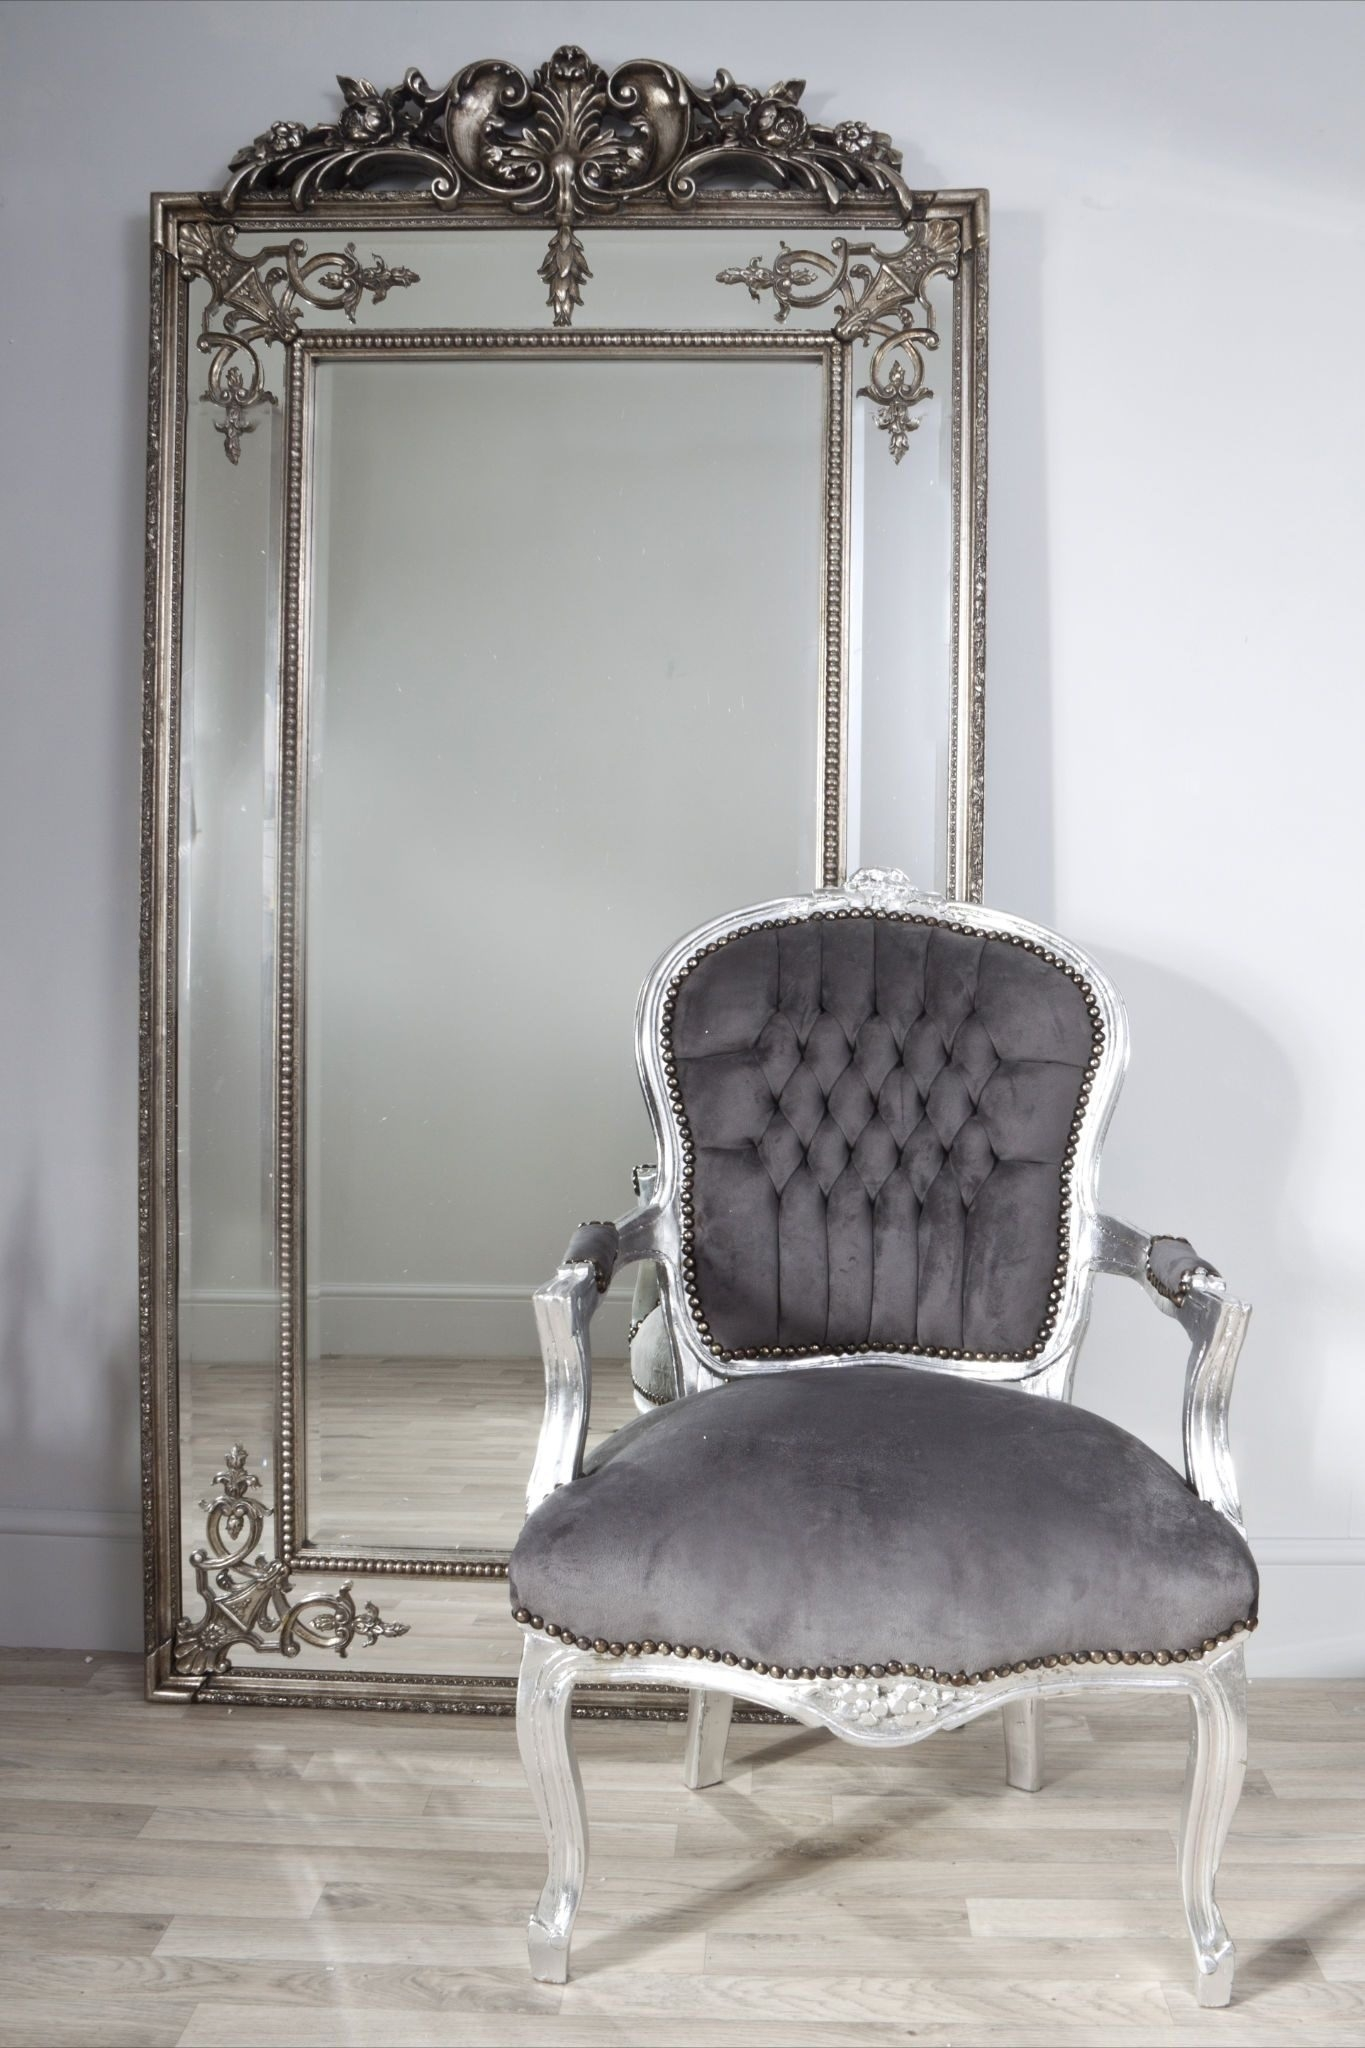 15 collection of silver ornate mirror mirror ideas silver ornate gilt design wall mirror m52 intended for silver ornate mirror image 11 of amipublicfo Choice Image